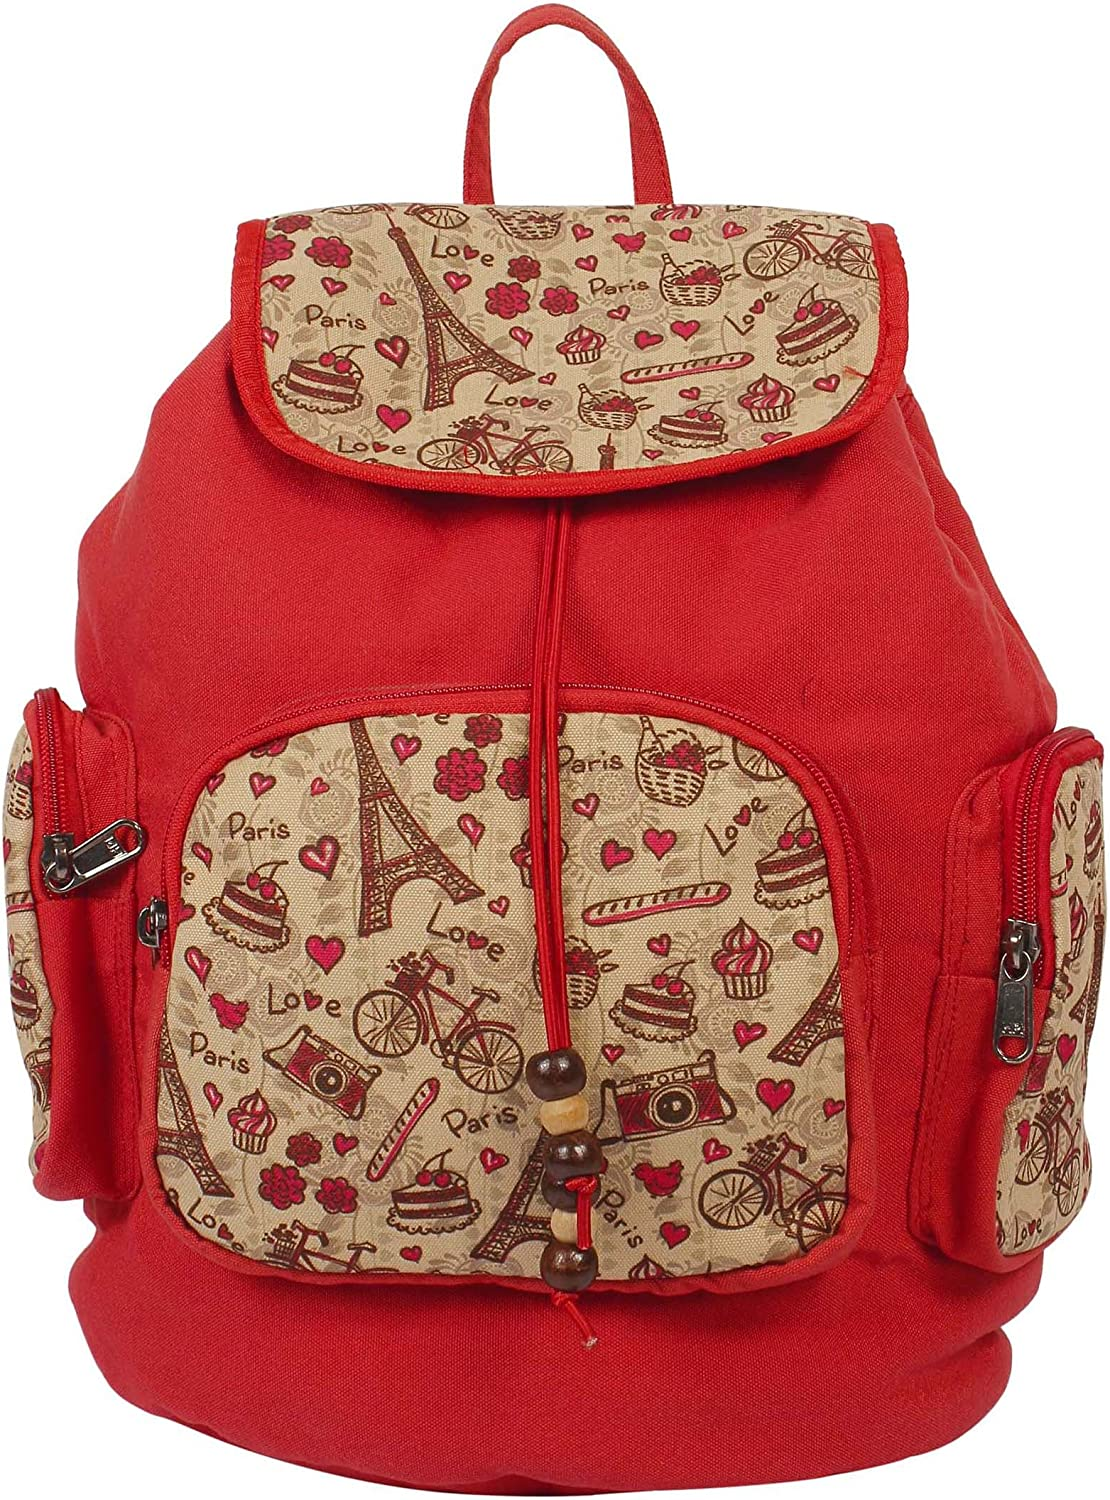 { Extra 10% Discount } Purse Collection Red Printed Backpack Bags with 3 Front Pockets for Women's